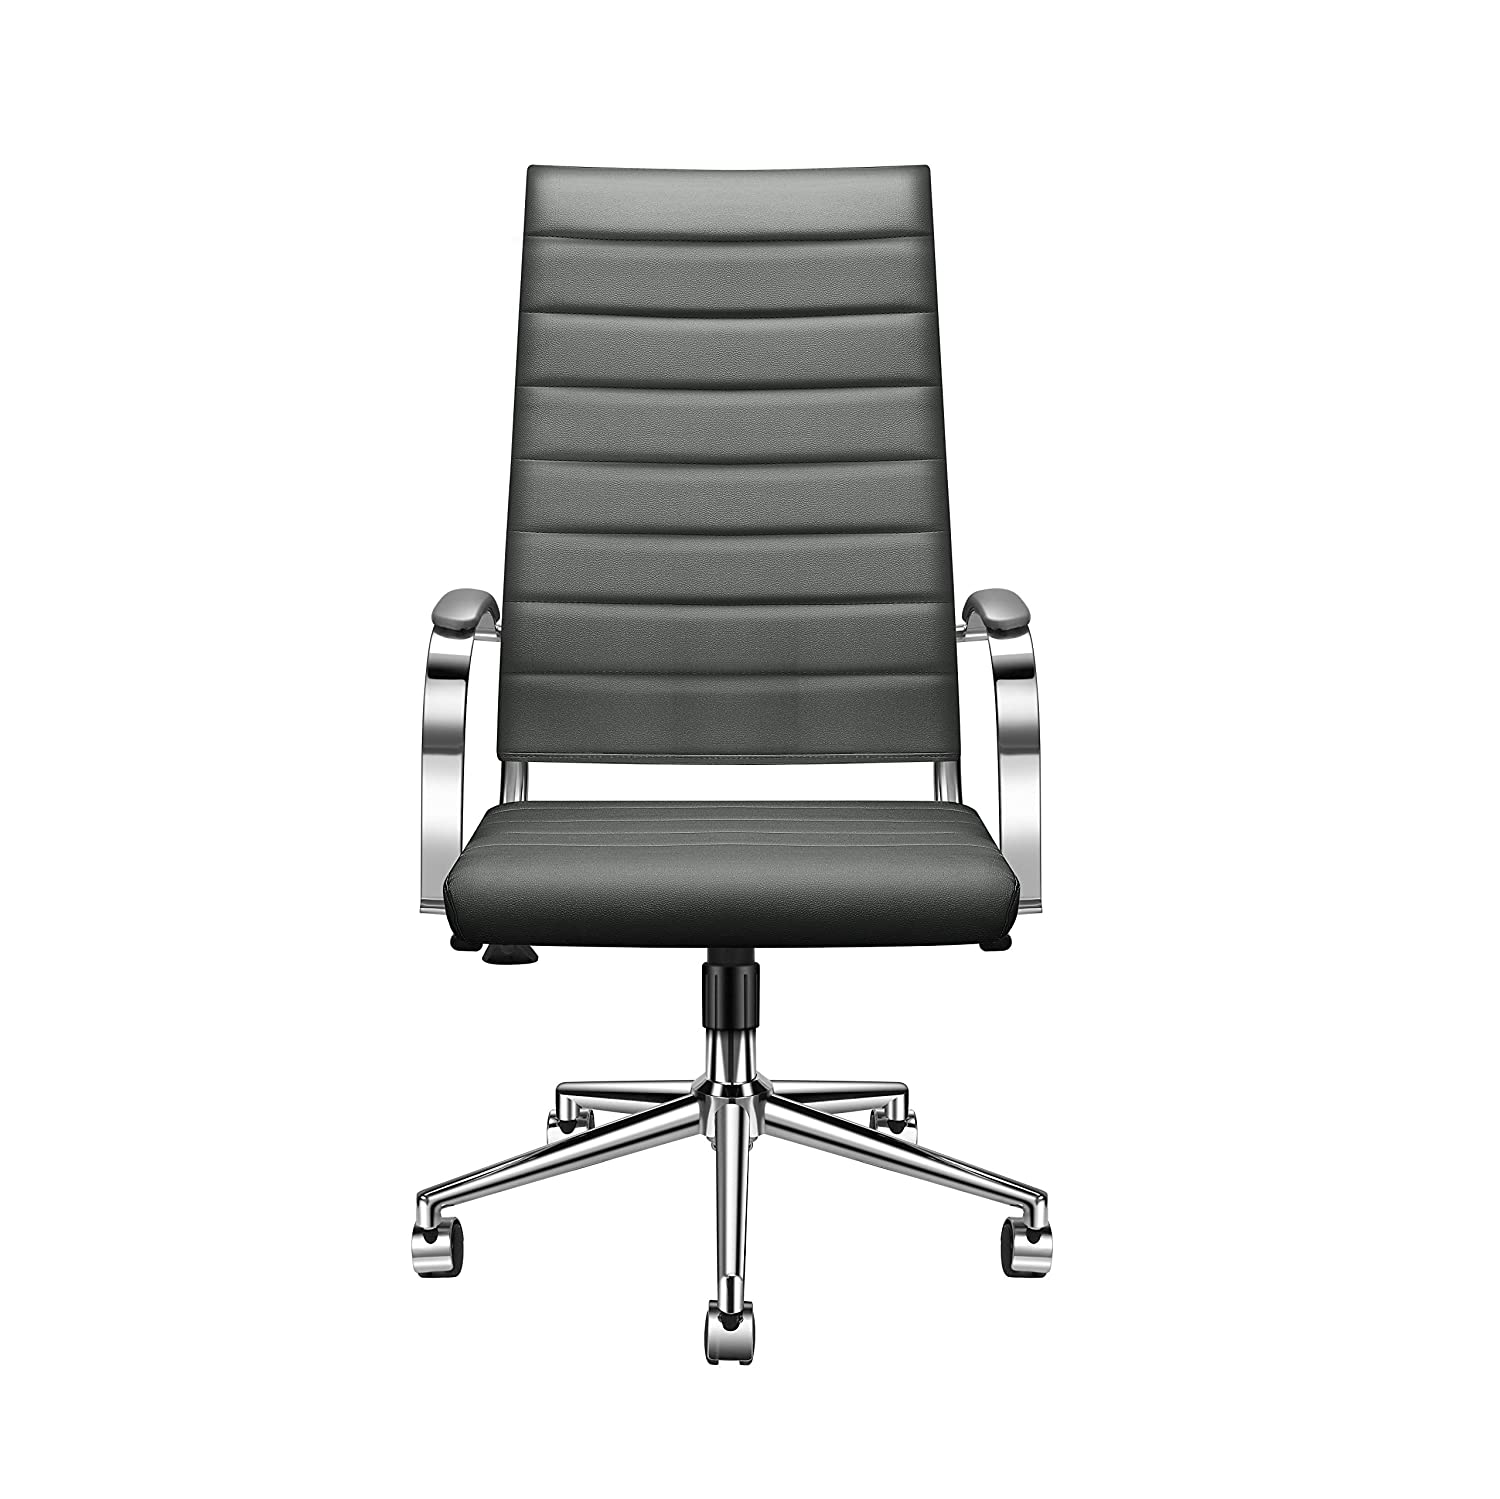 LUXMOD High Back Office Chair Grey